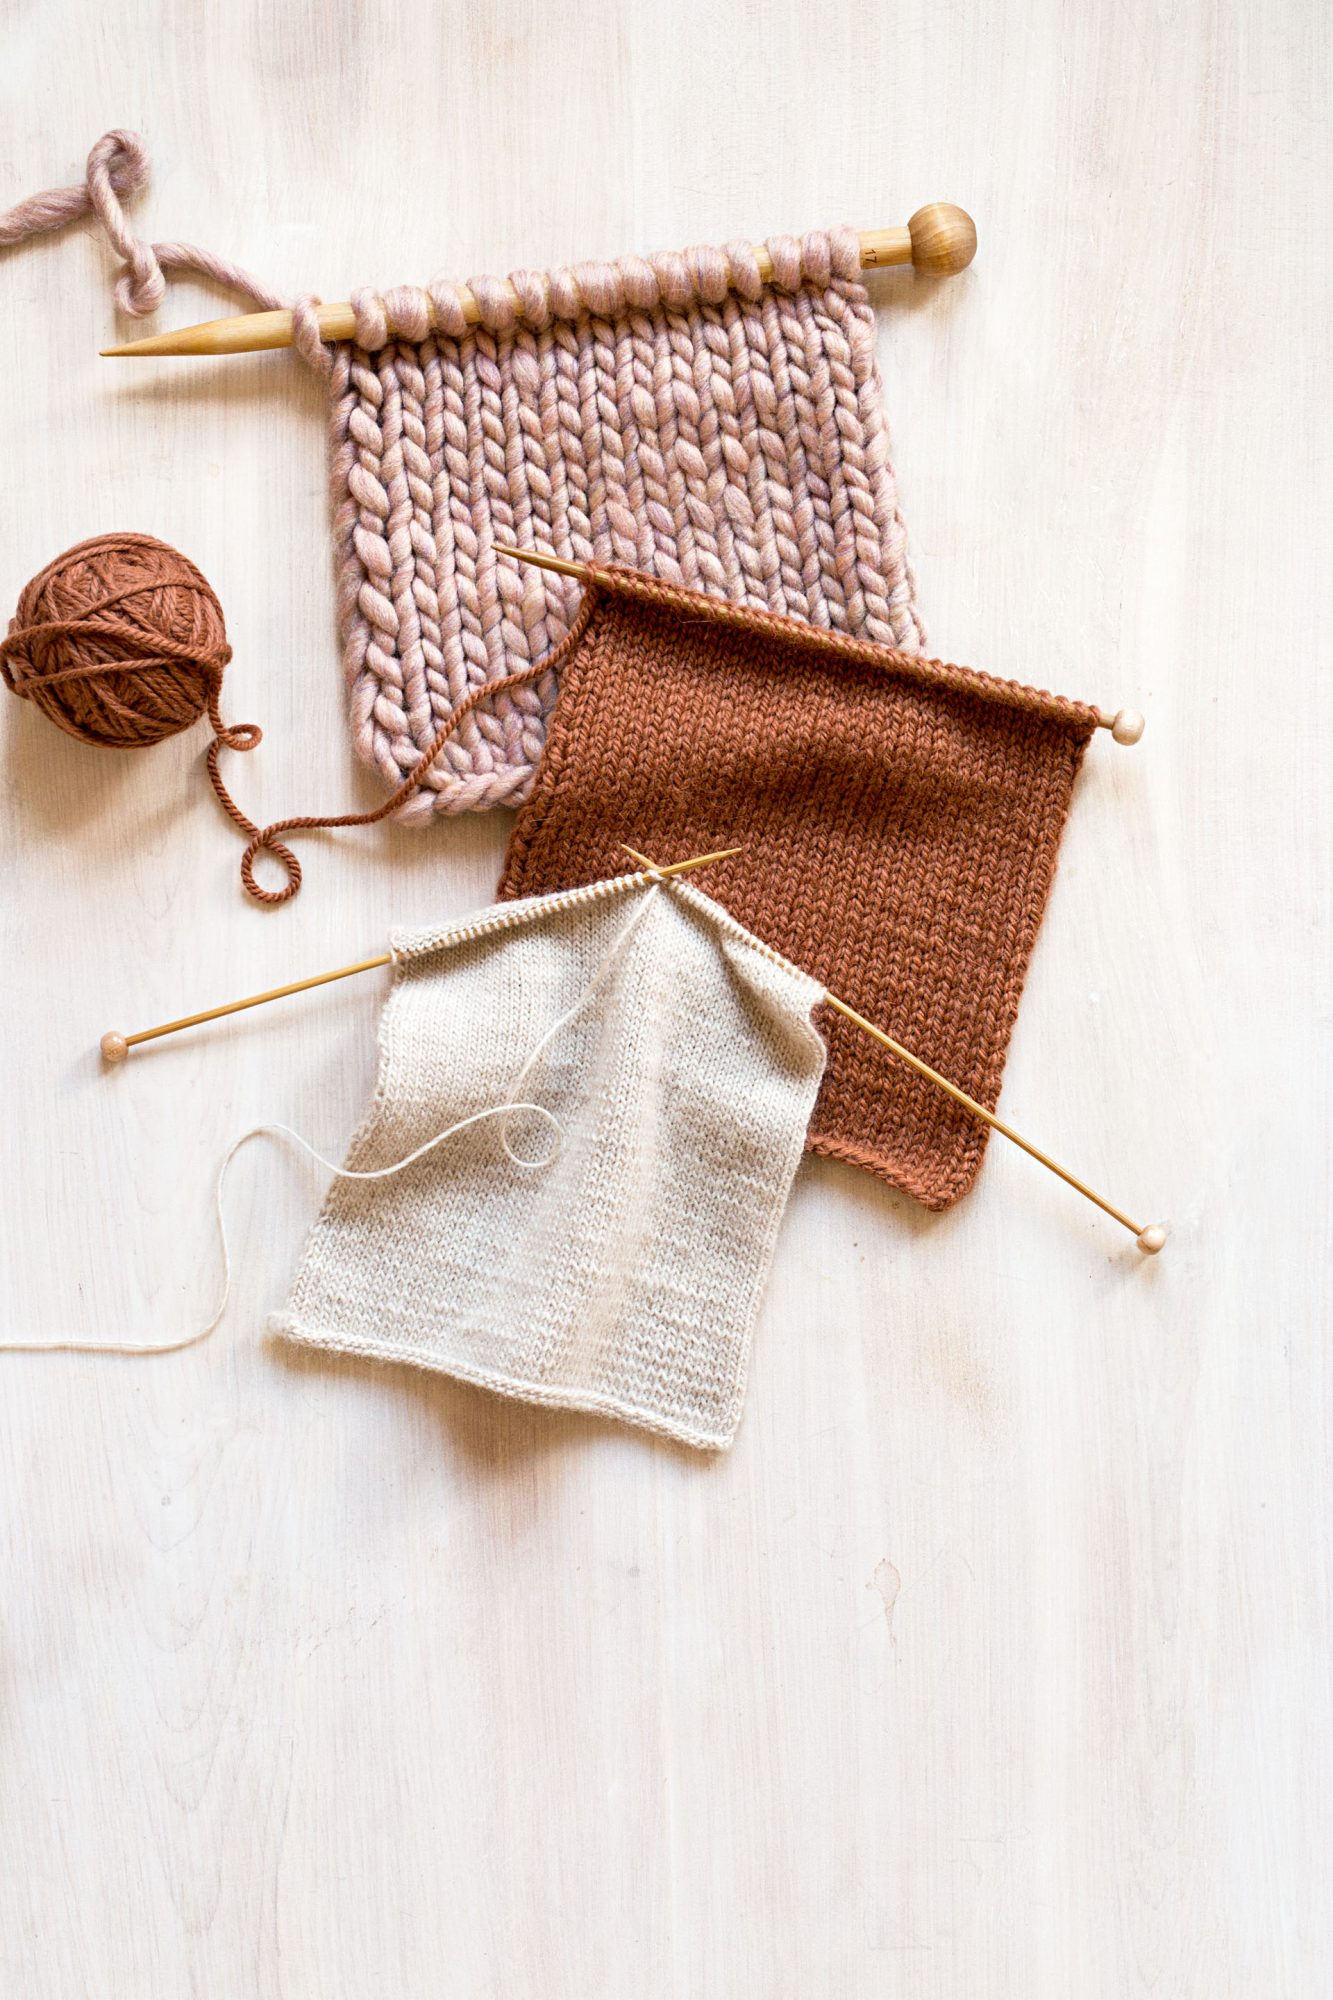 Knitting Can Reduce Depression, Anxiety, and Chronic Pain